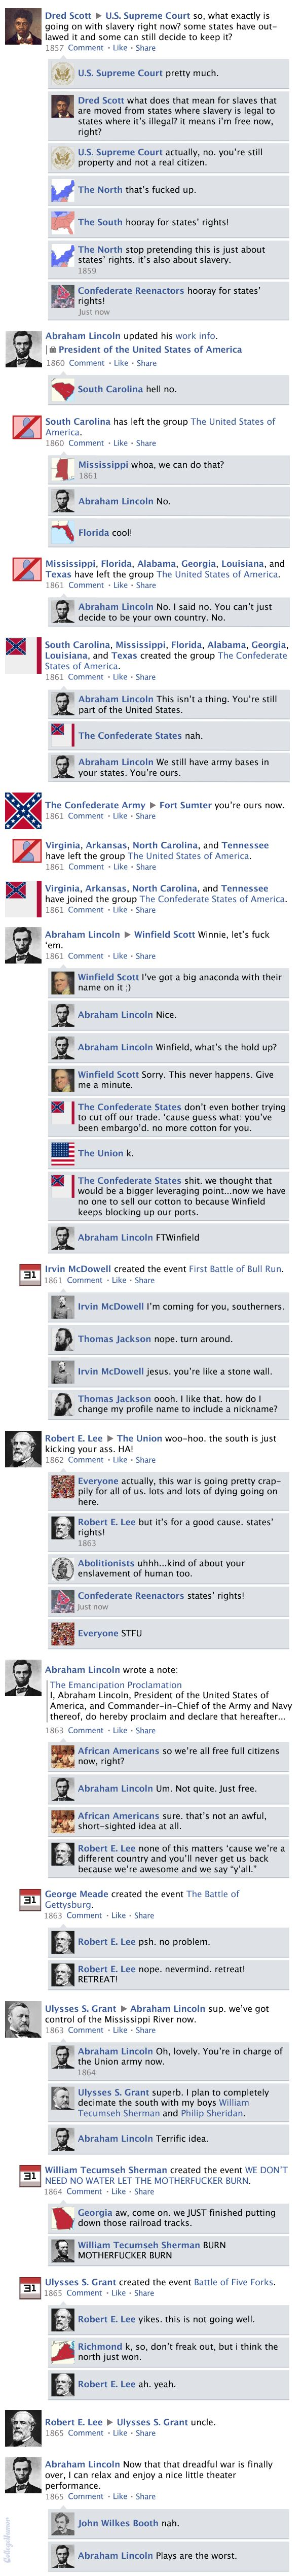 "Facebook Timeline History of the U.S. Civil War    ""k, so, don't freak out, but i think the north just won."""